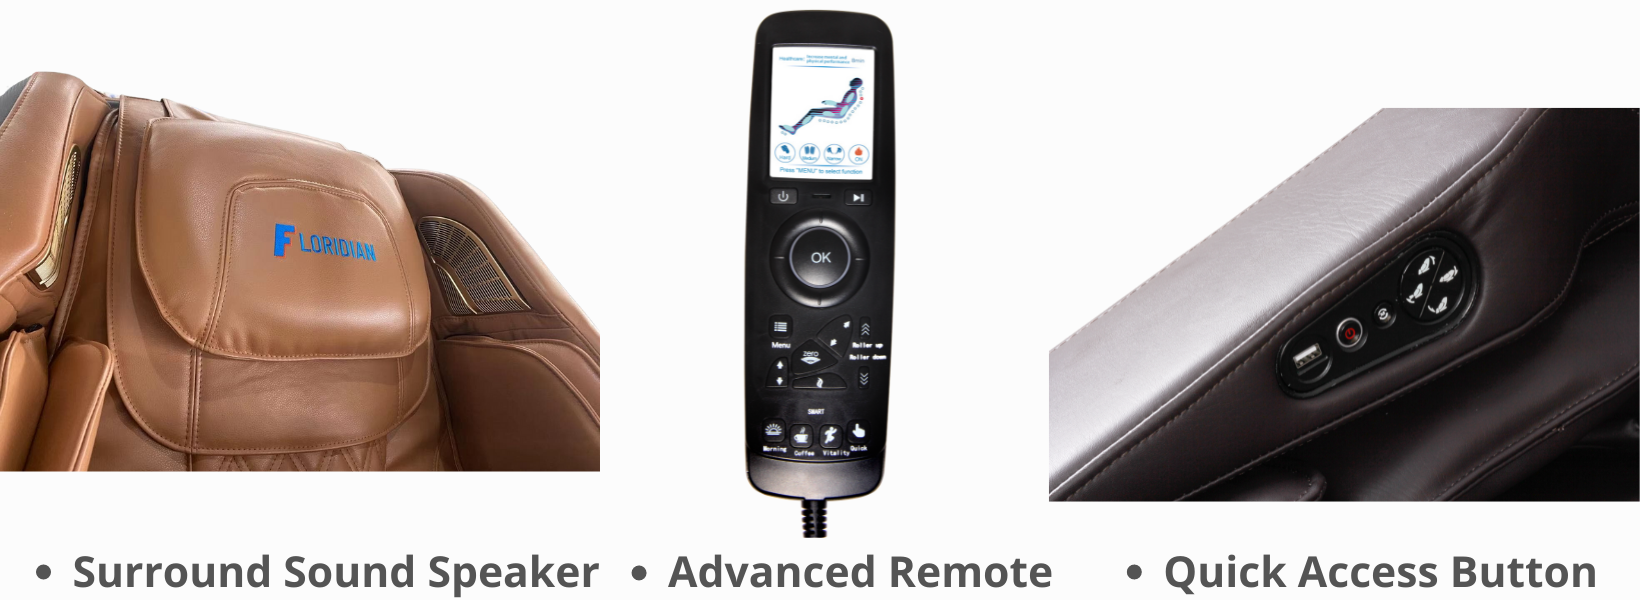 Surround Sound Speaker: Add the benefit of music therapy to your massage. Connect wirelessly to compatible devices and play your favorite music. High-quality compact speakers are mounted above the shoulder massagers and aimed at your ears for a surround sound experience. Quick Access Arm Console. Advanced remote